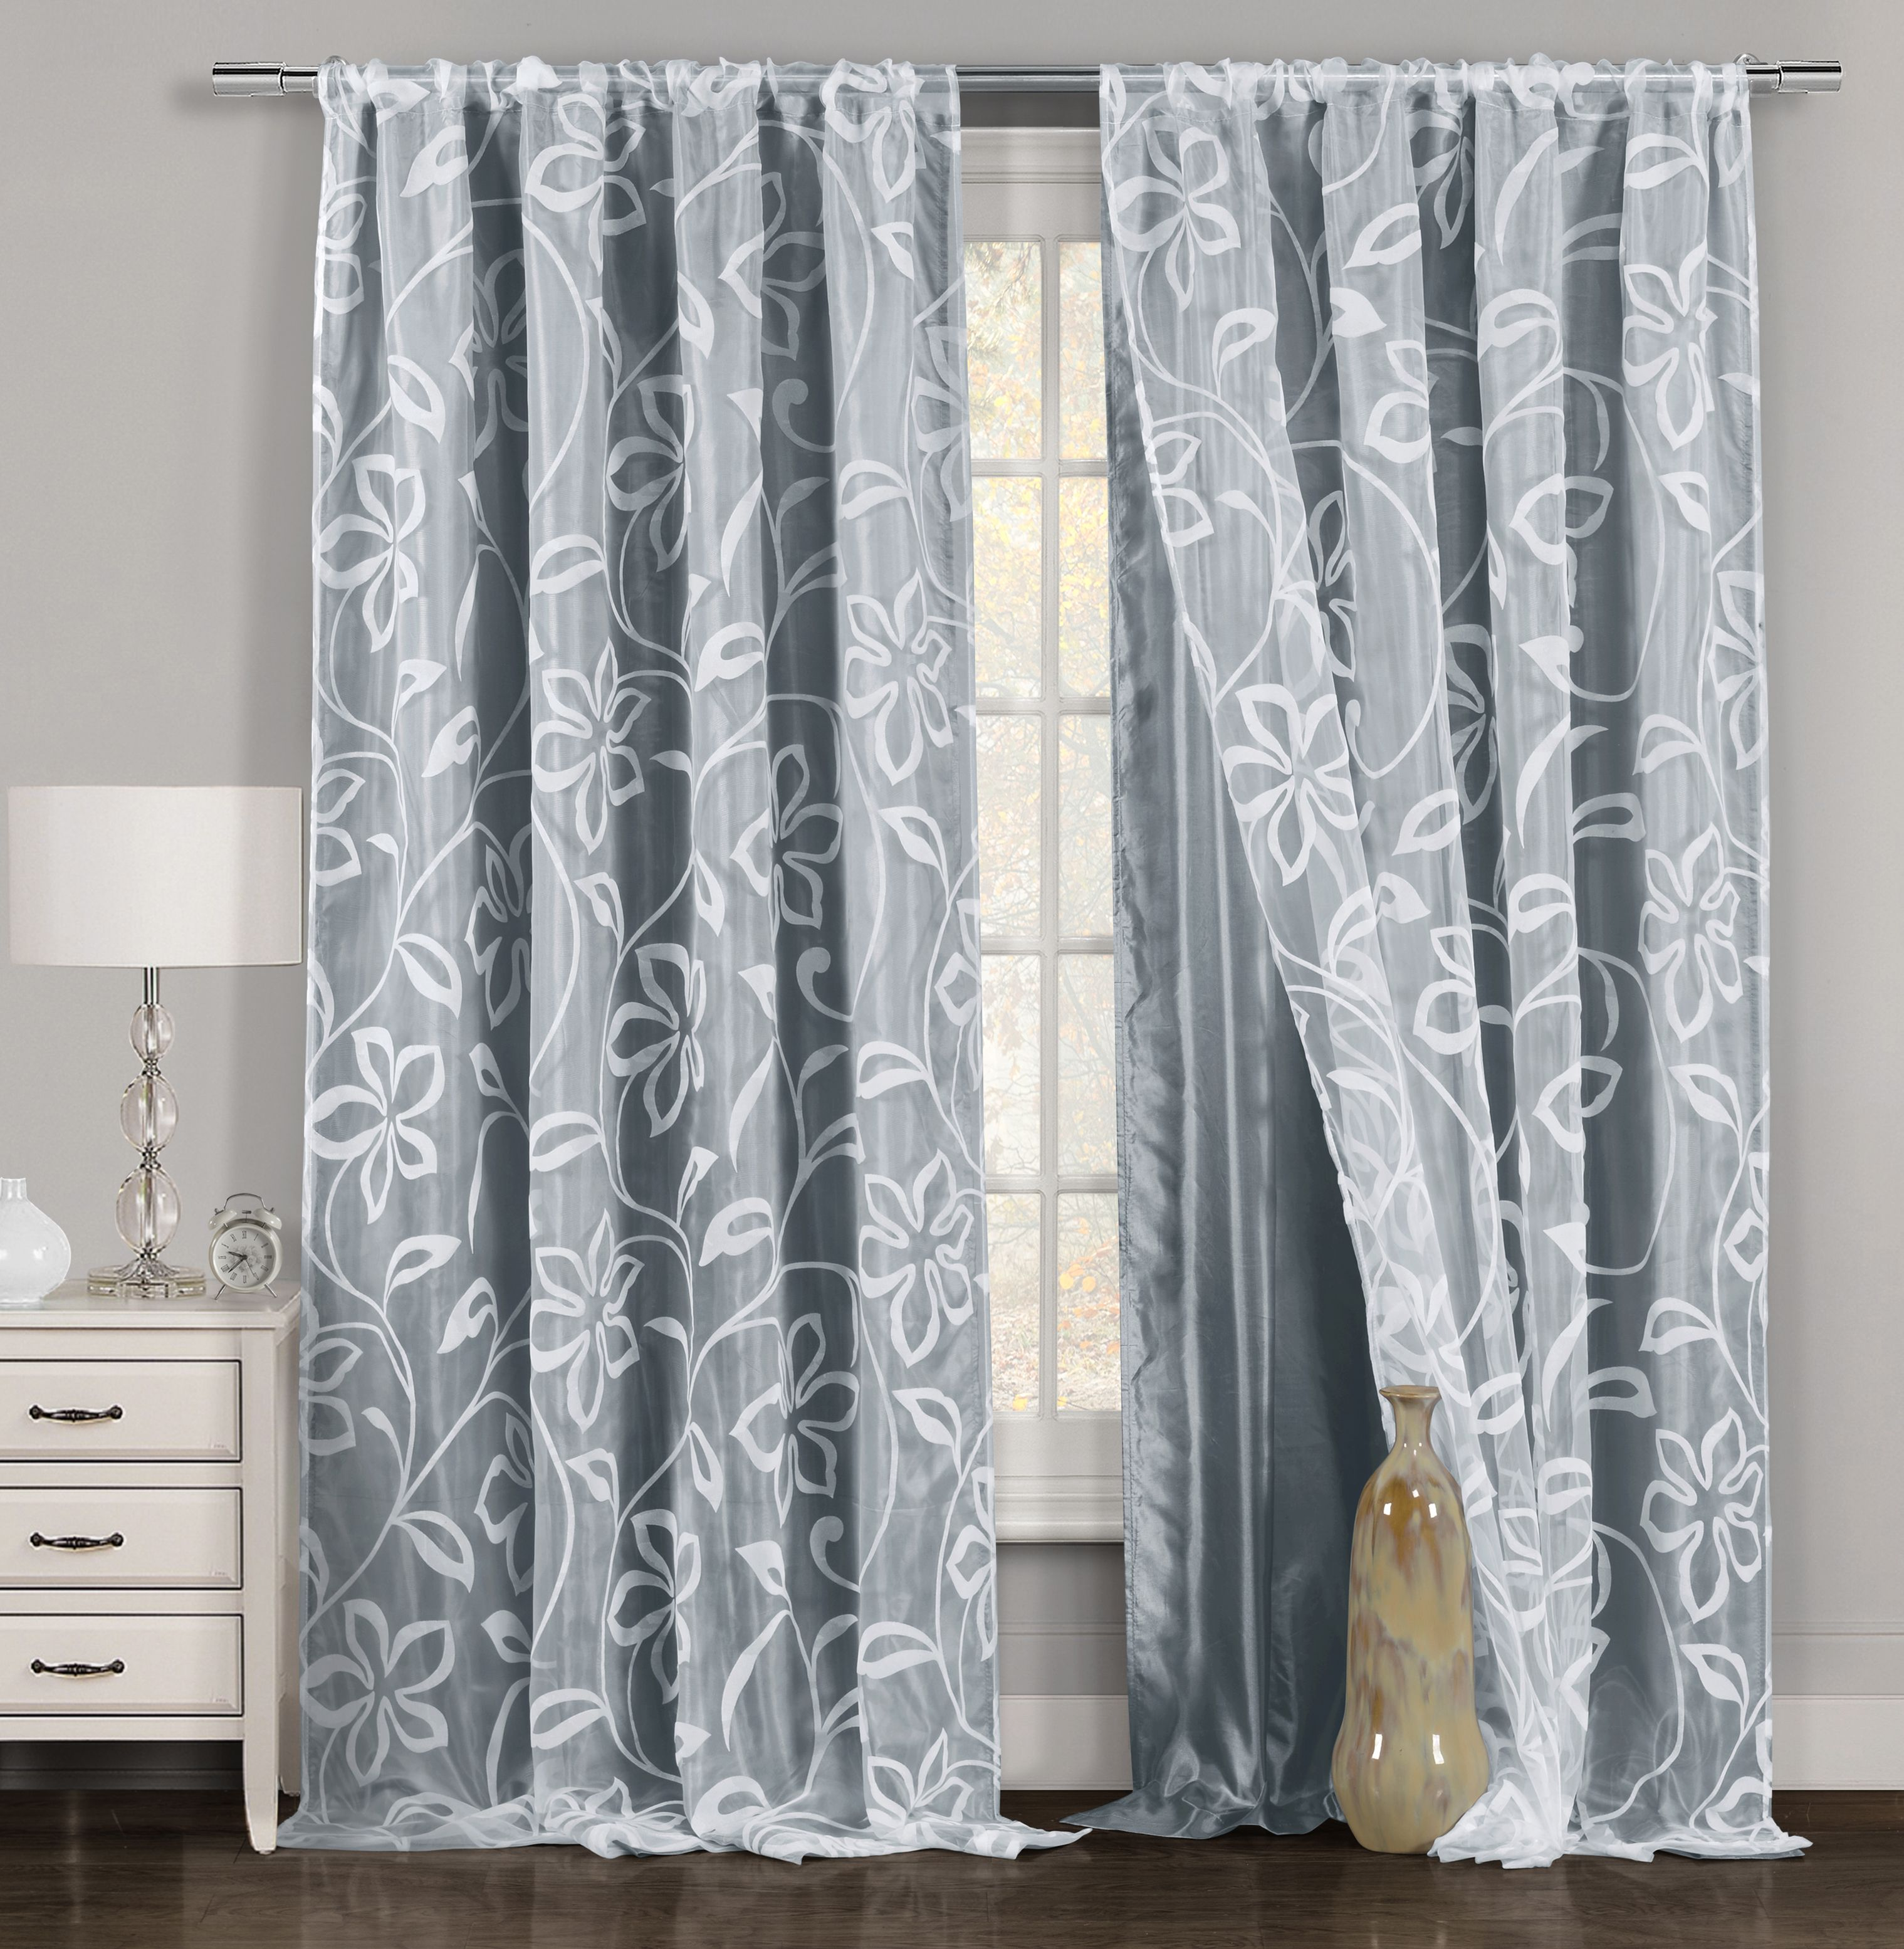 Pennie curtain panels in Teal   Home Decor that I love   Pinterest ...